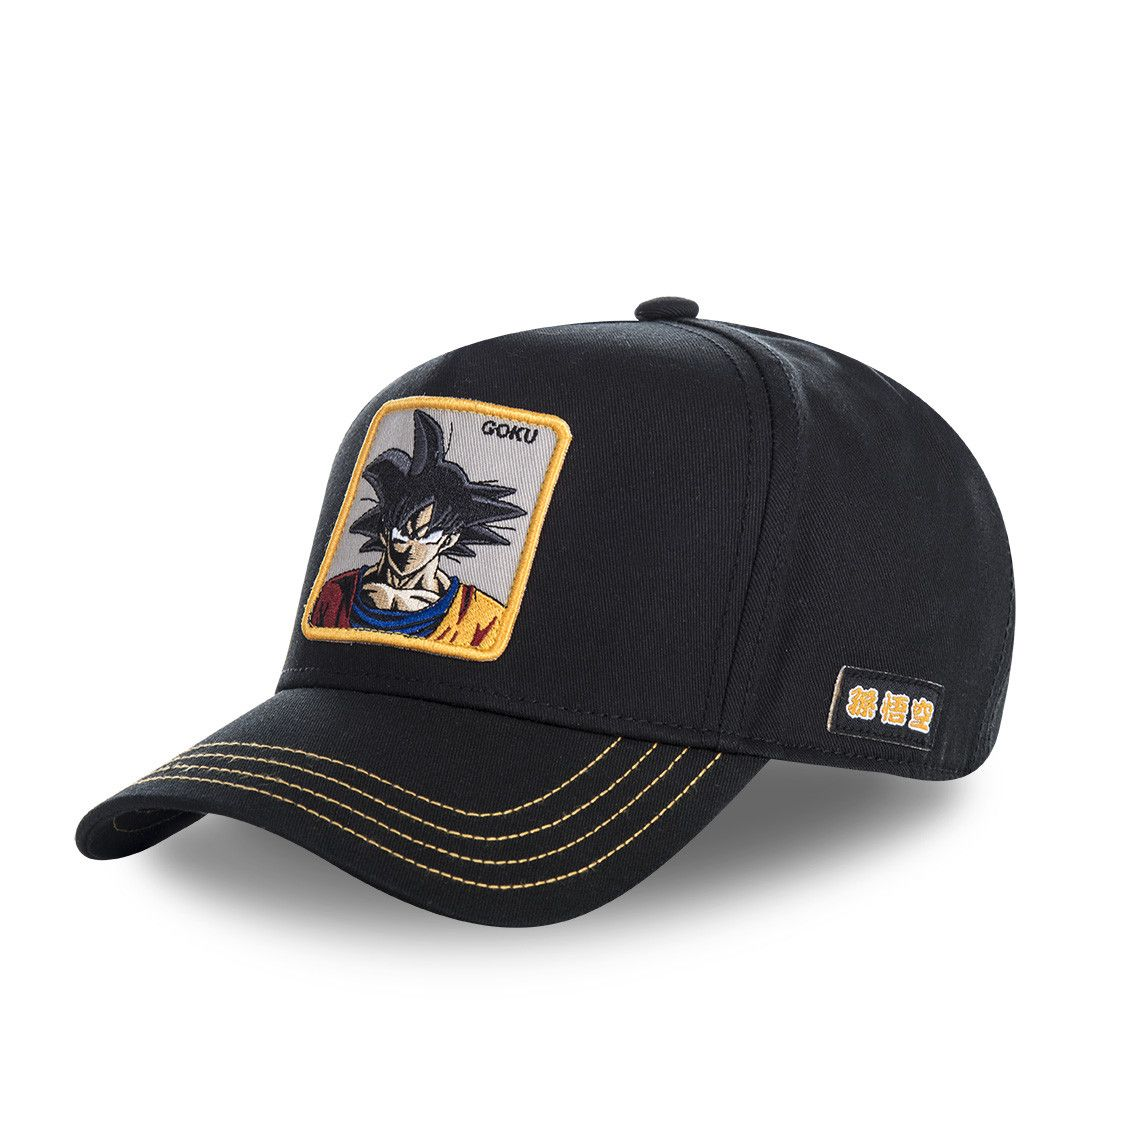 Casquette capslab dragon ball z goku noir filet jaune (photo)